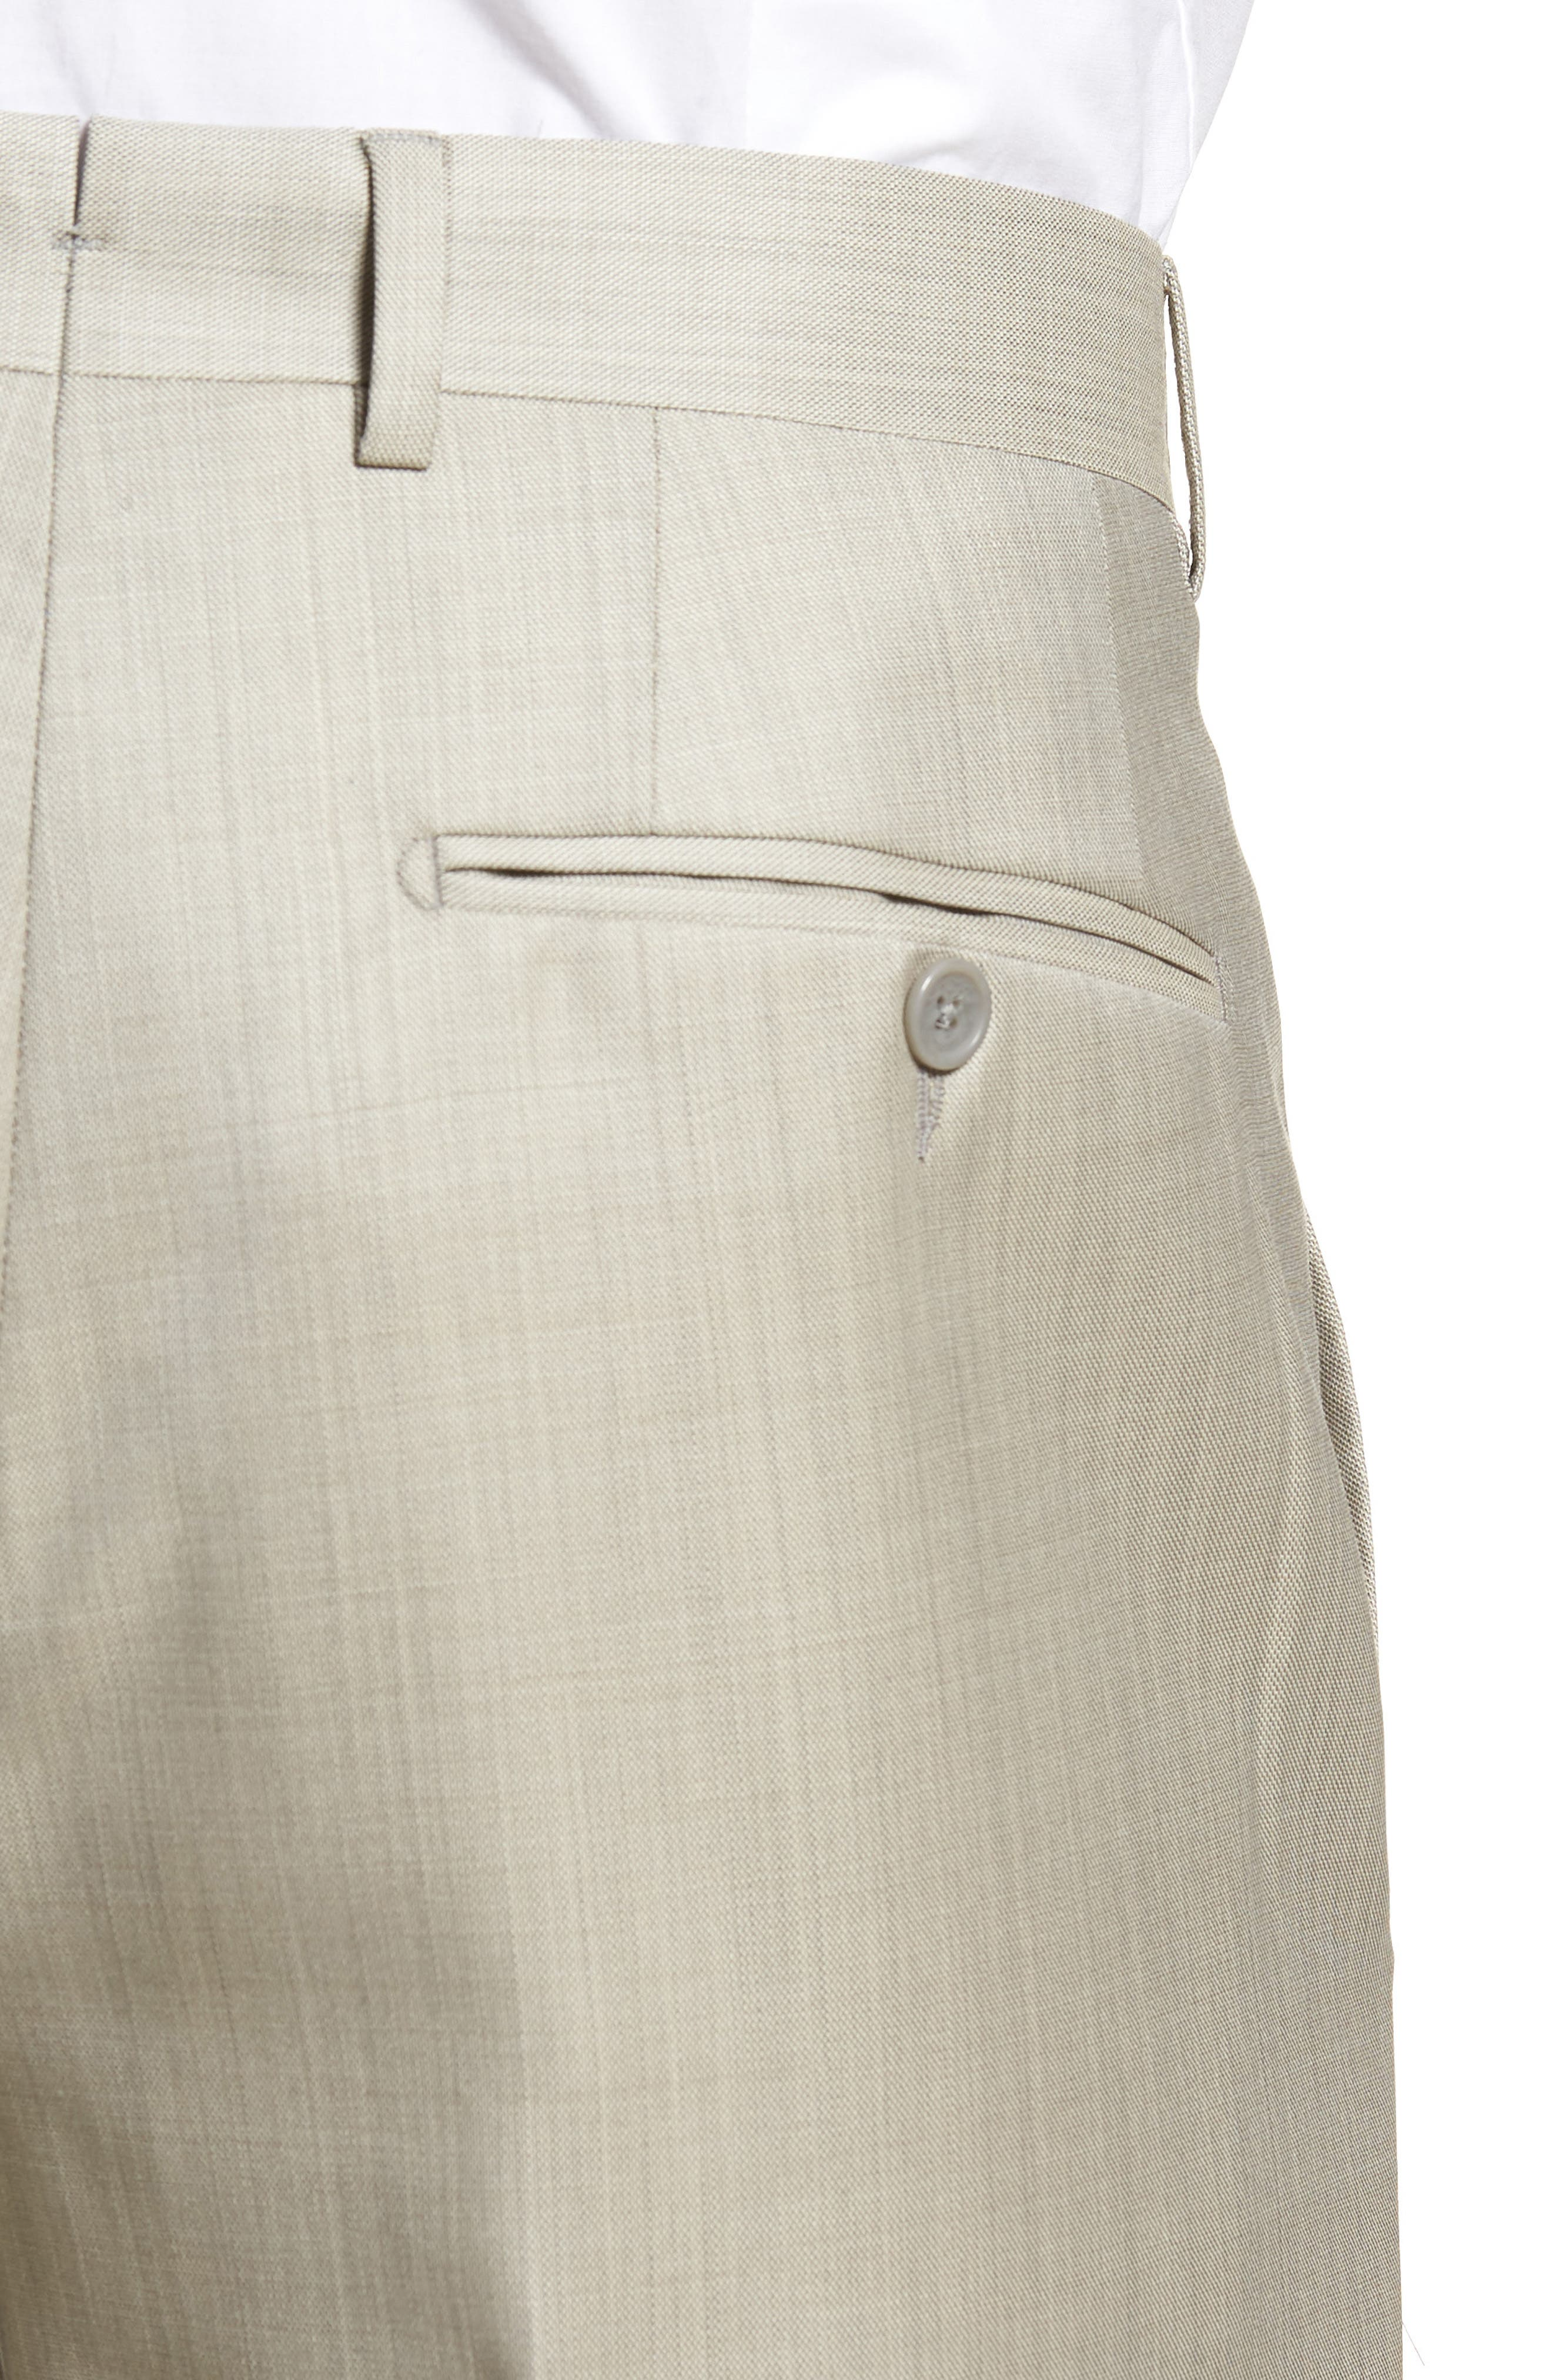 Flat Front Solid Wool Trousers,                             Alternate thumbnail 4, color,                             Sand